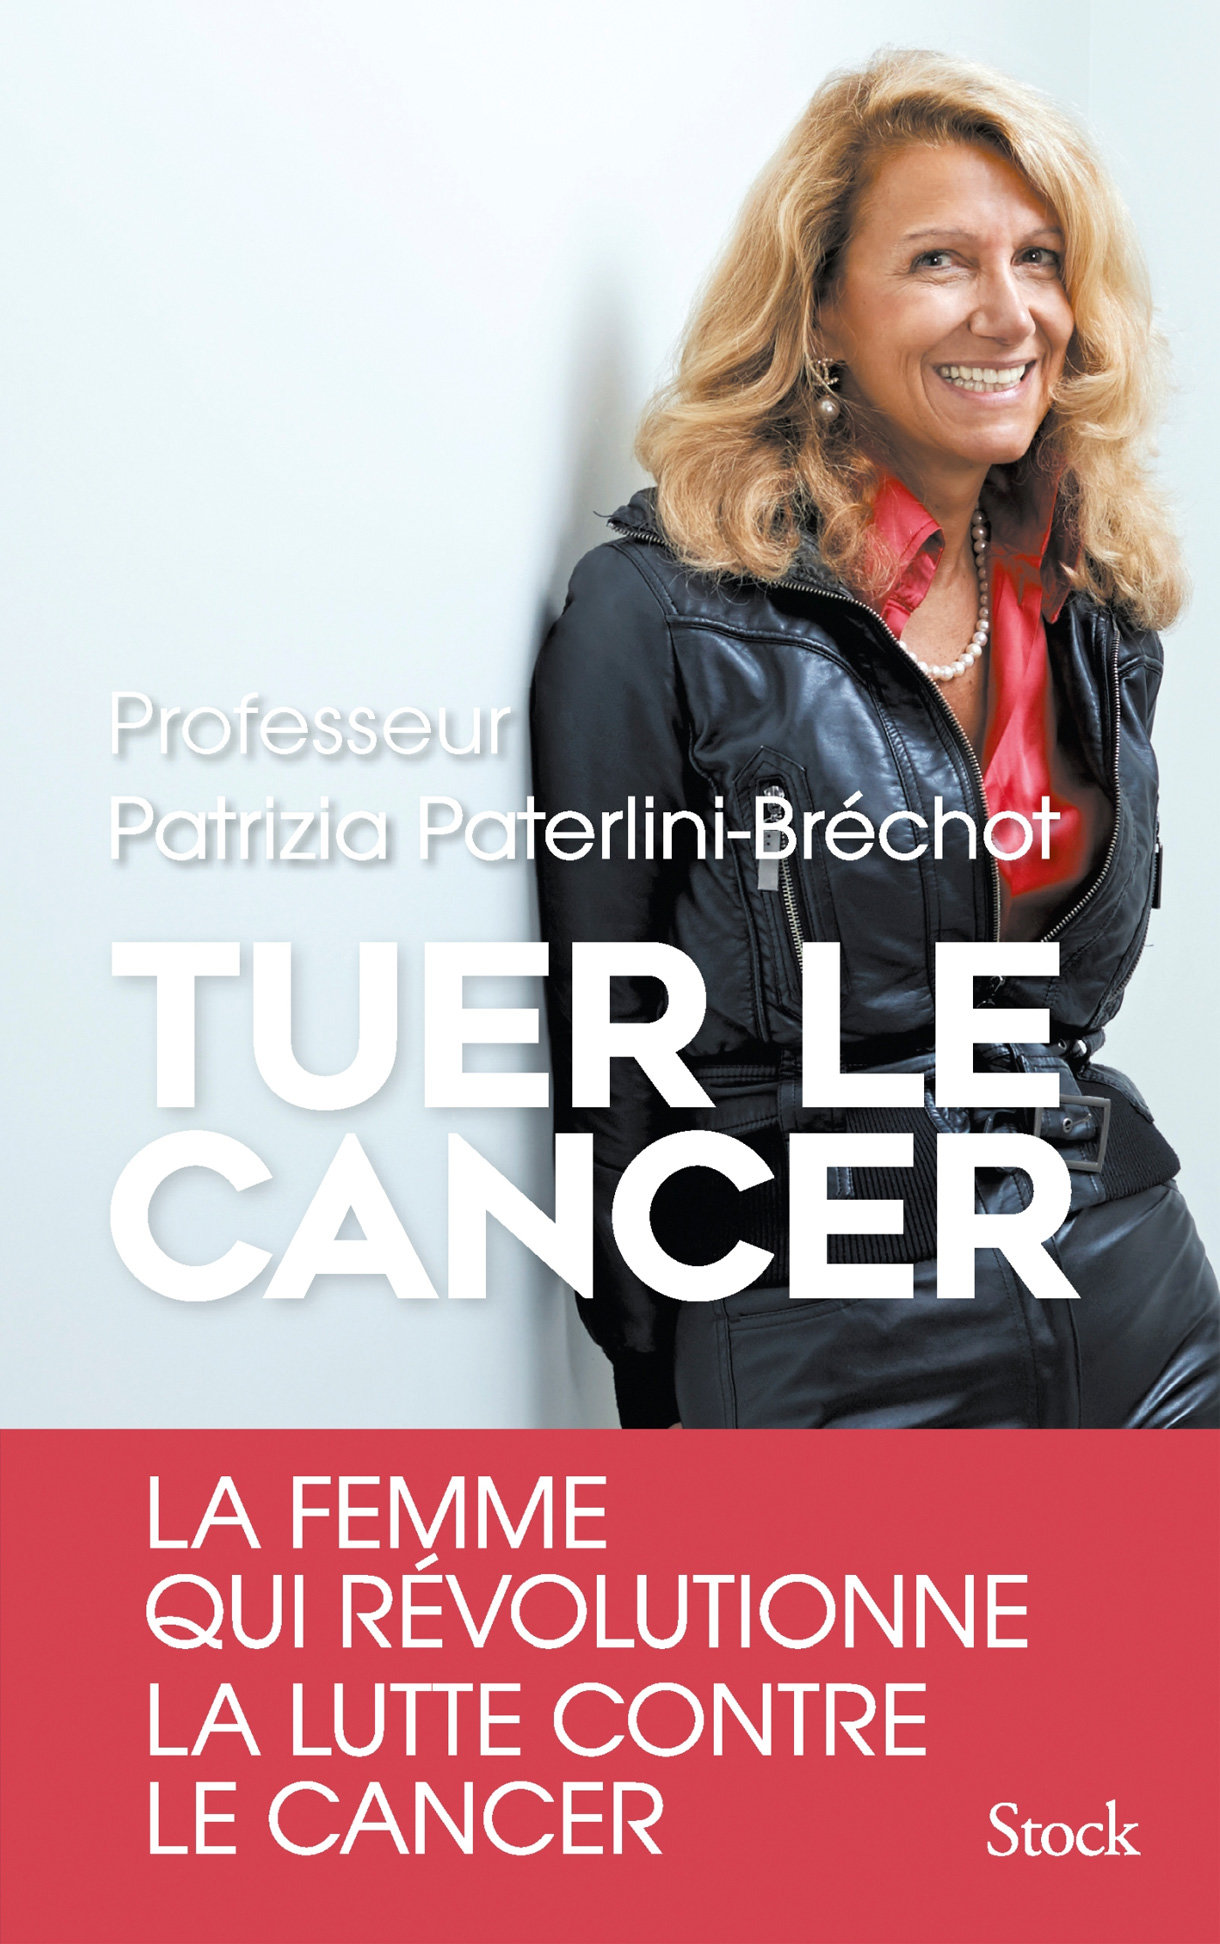 Tuer le cancer. Patrizia Paterlini-Bréchot